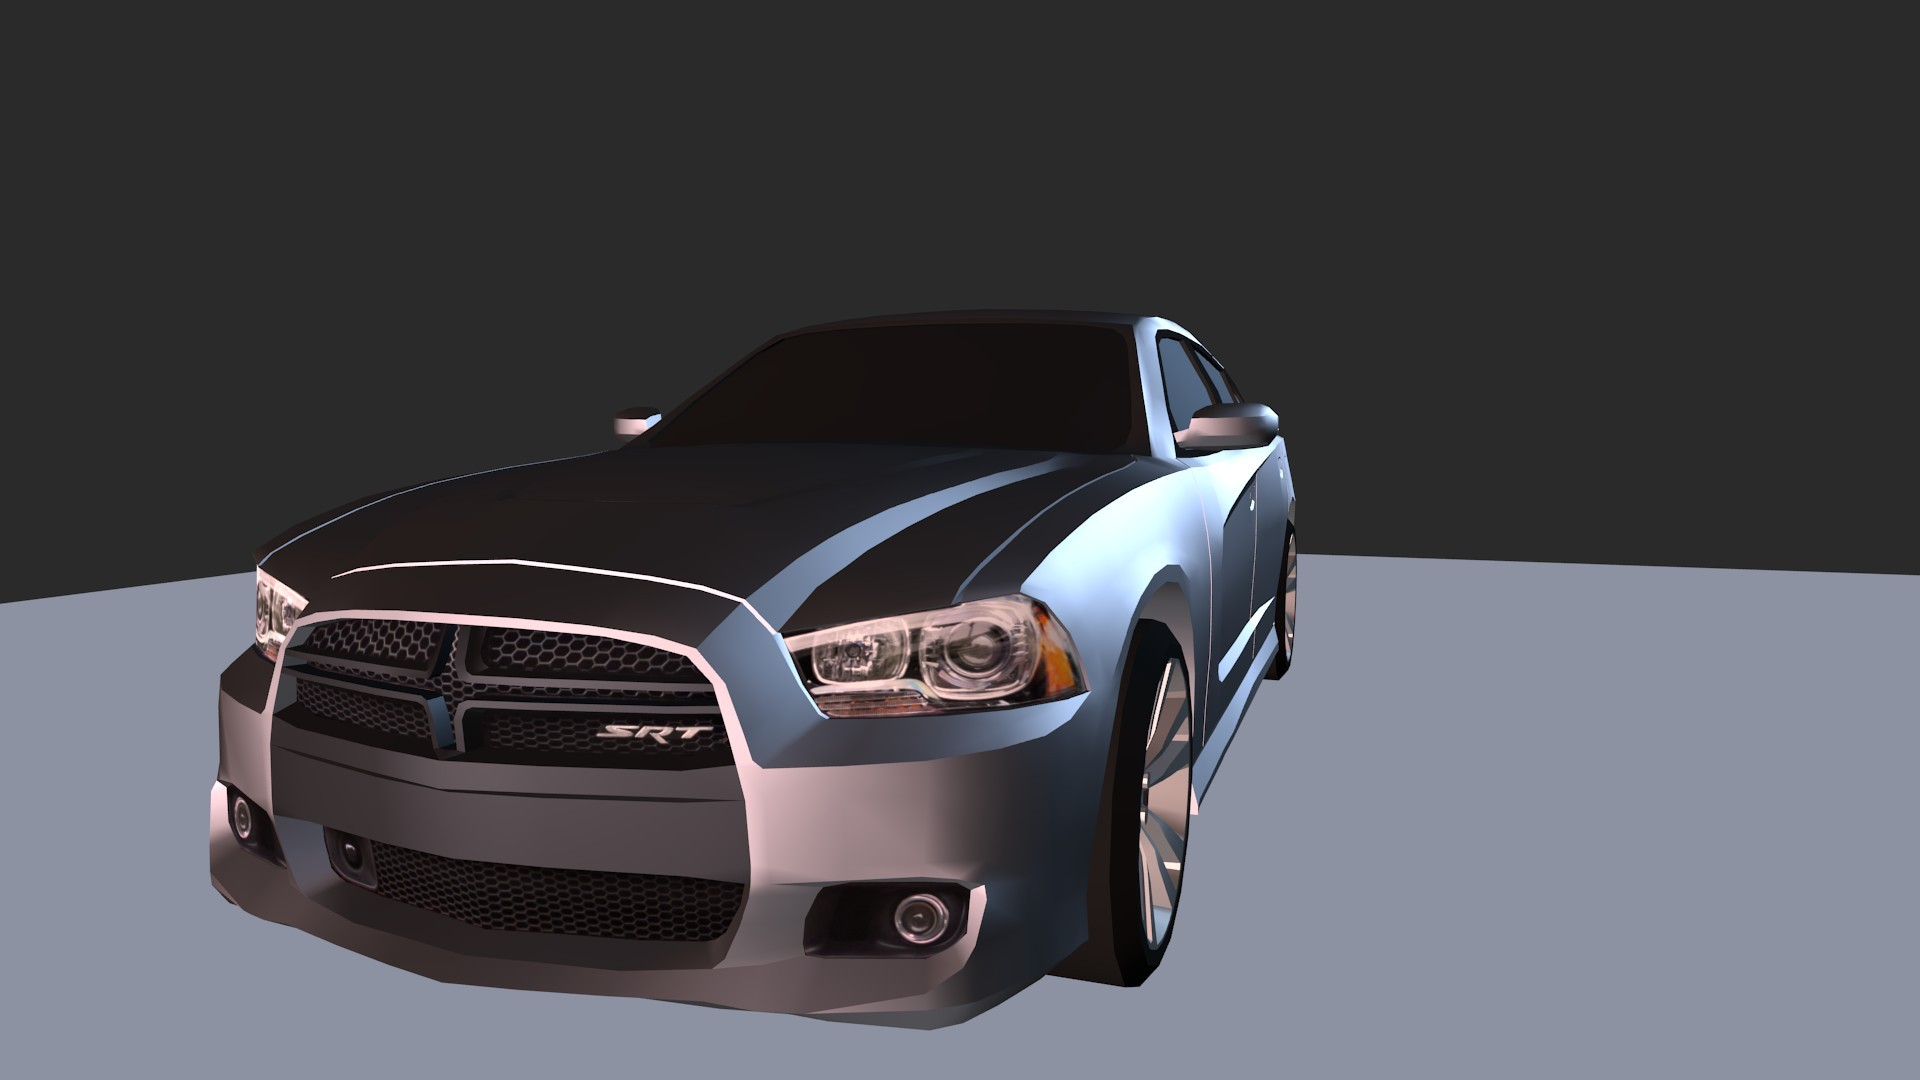 Dodge Charger SRT8 LowPoly